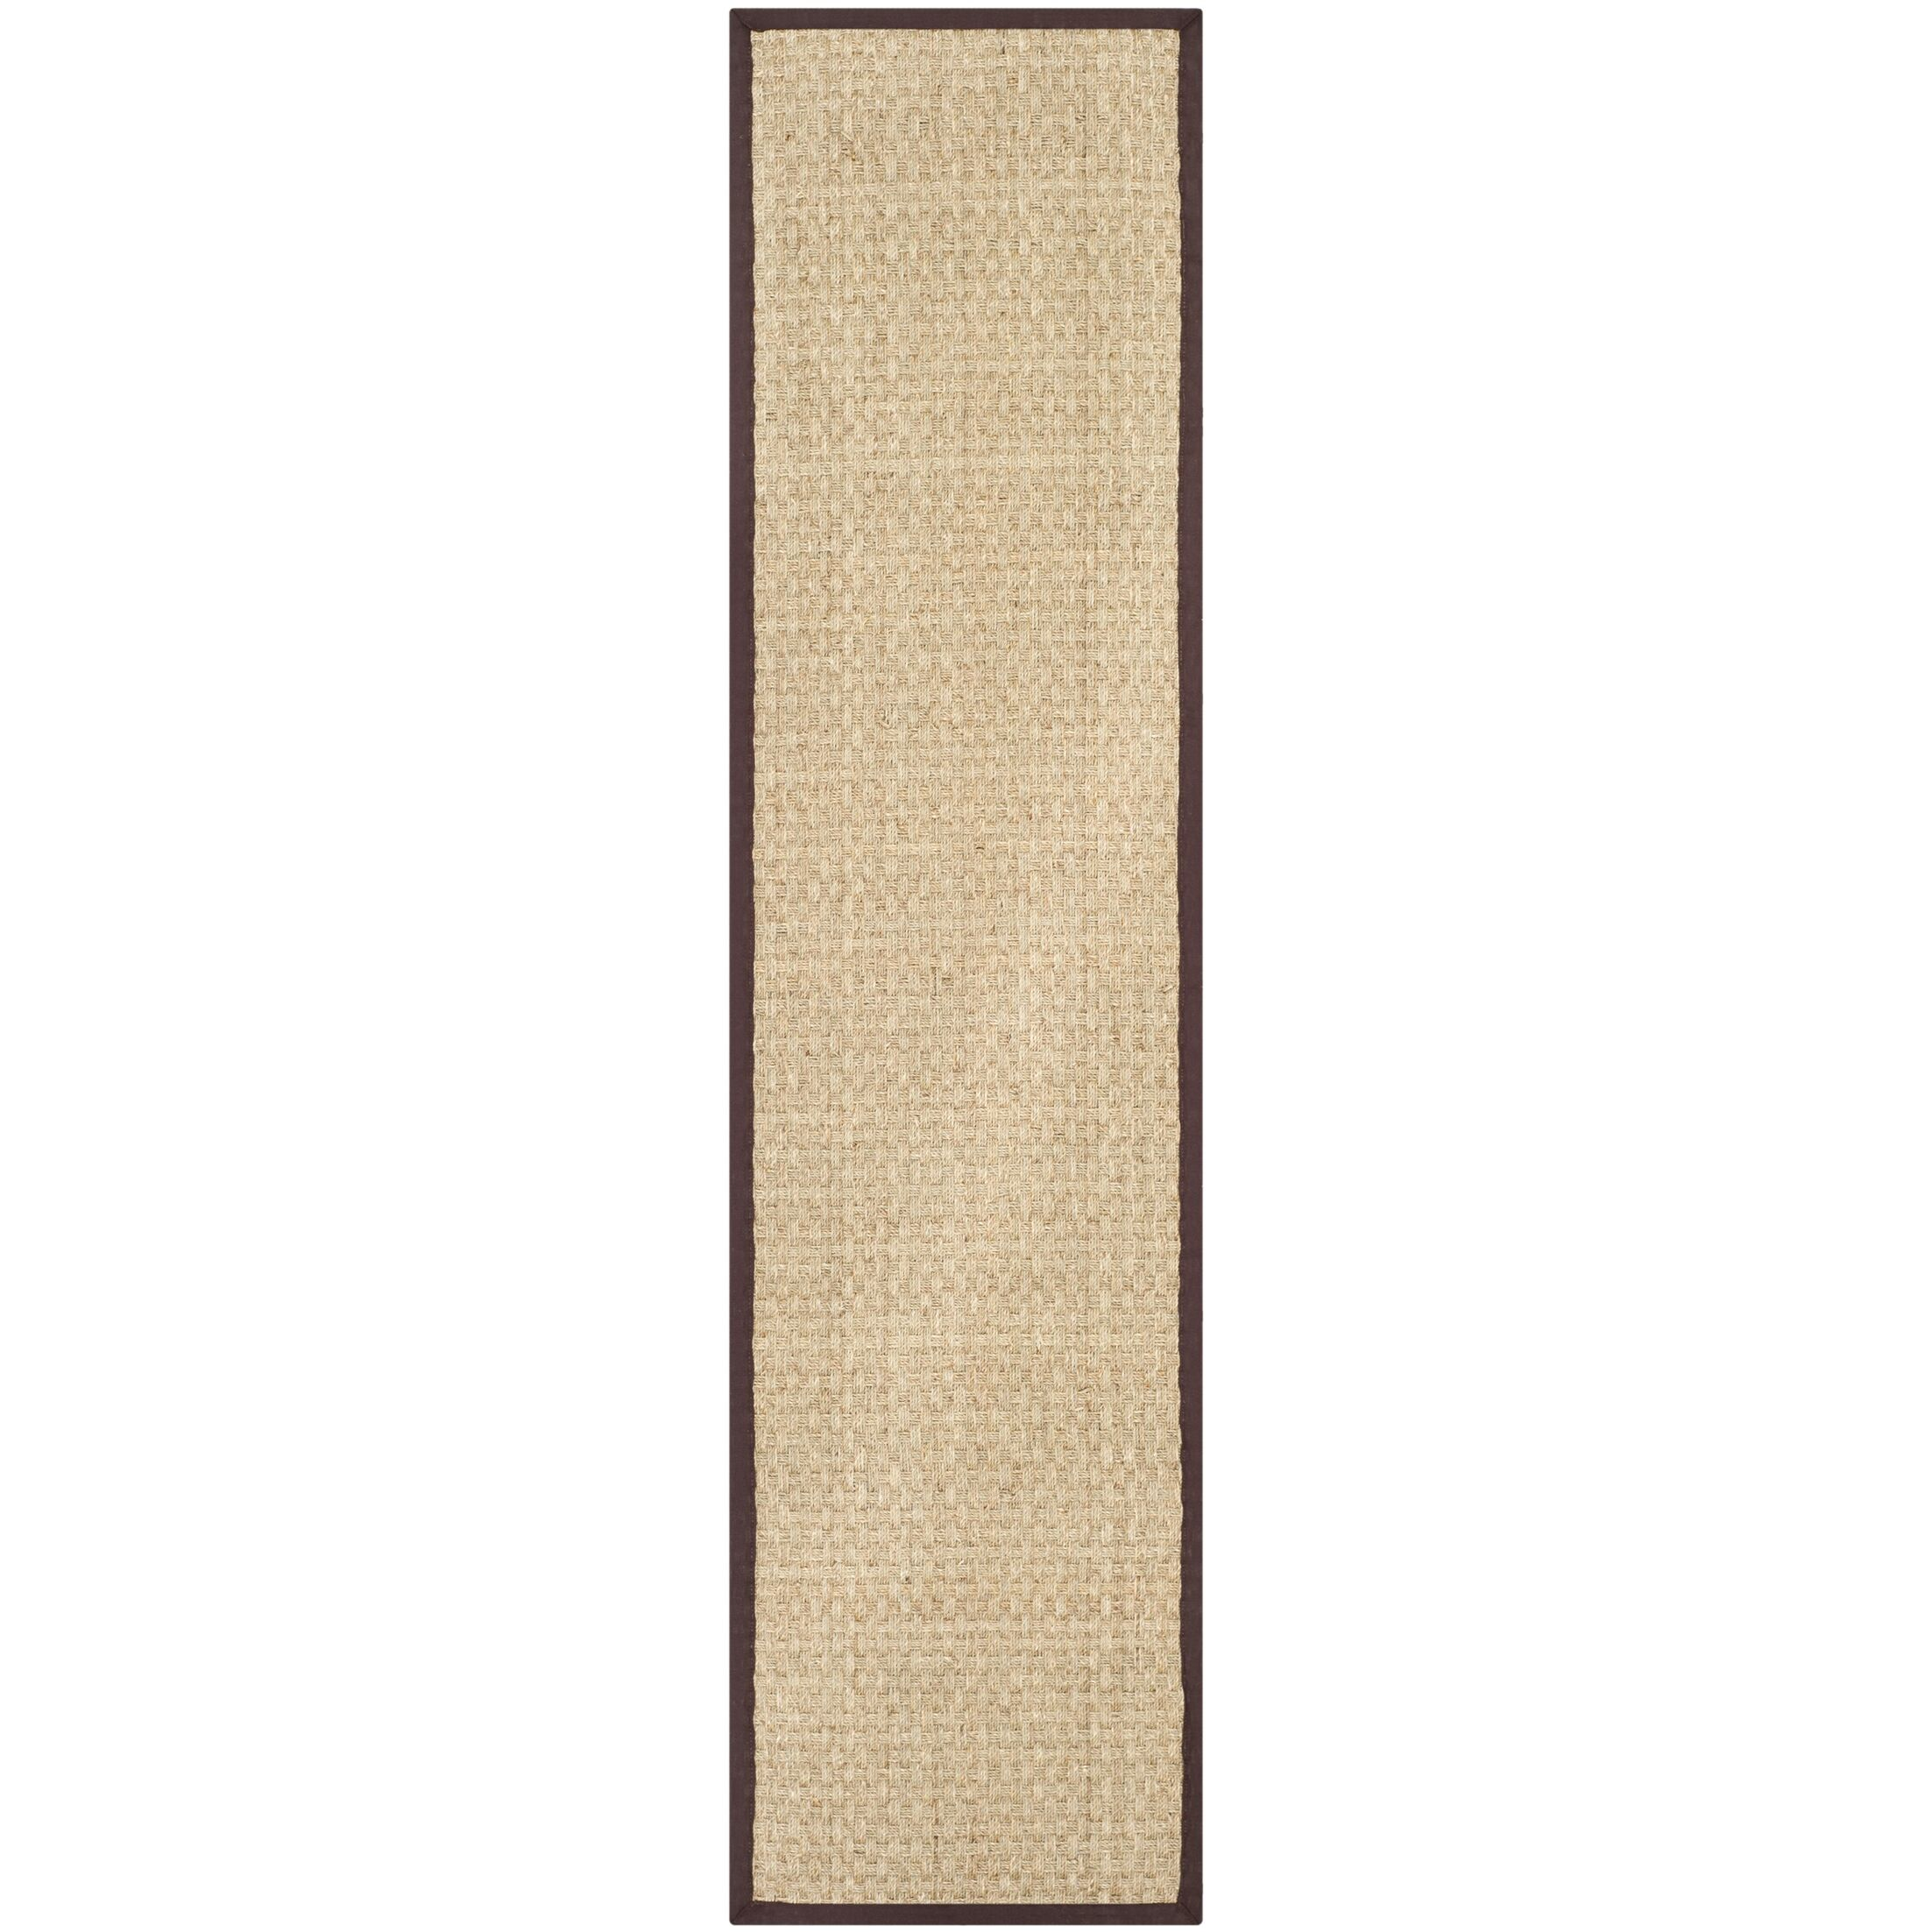 Dufour Hand-Woven Natural/Brown Area Rug Rug Size: Rectangle 2'6